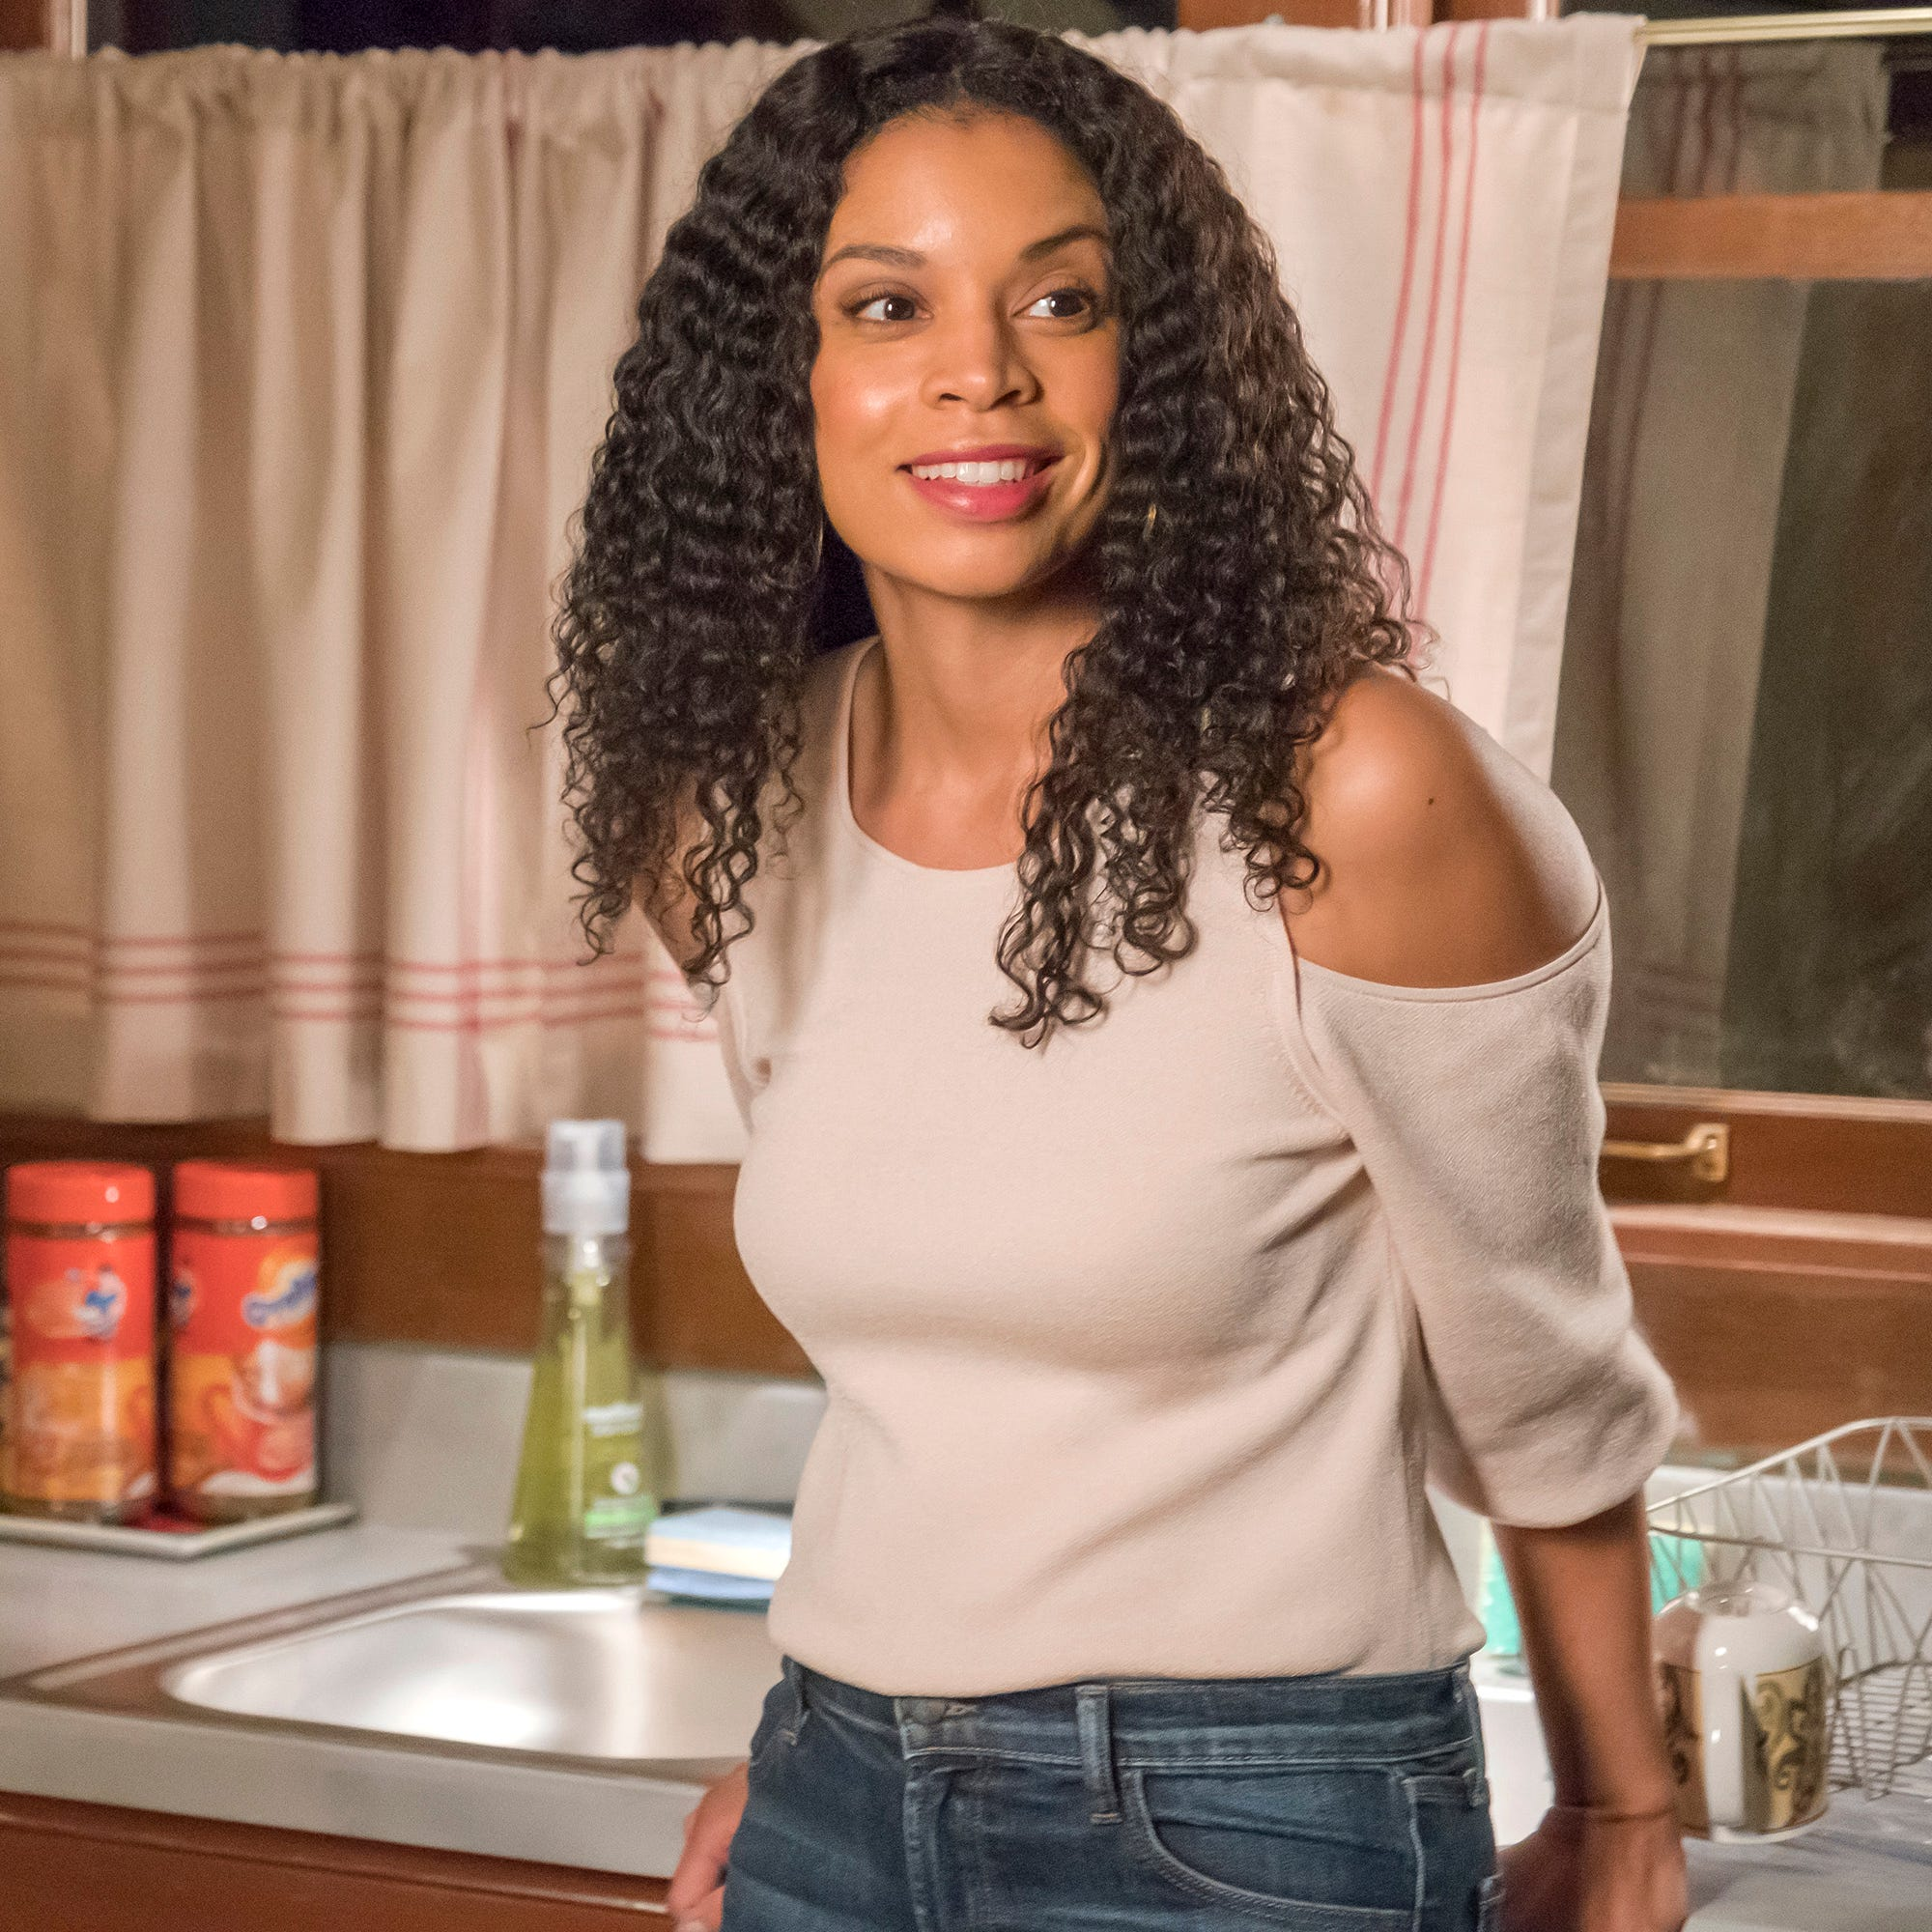 'This Is Us': Yes, Susan Kelechi Watson danced 'for real' in Beth's big episode